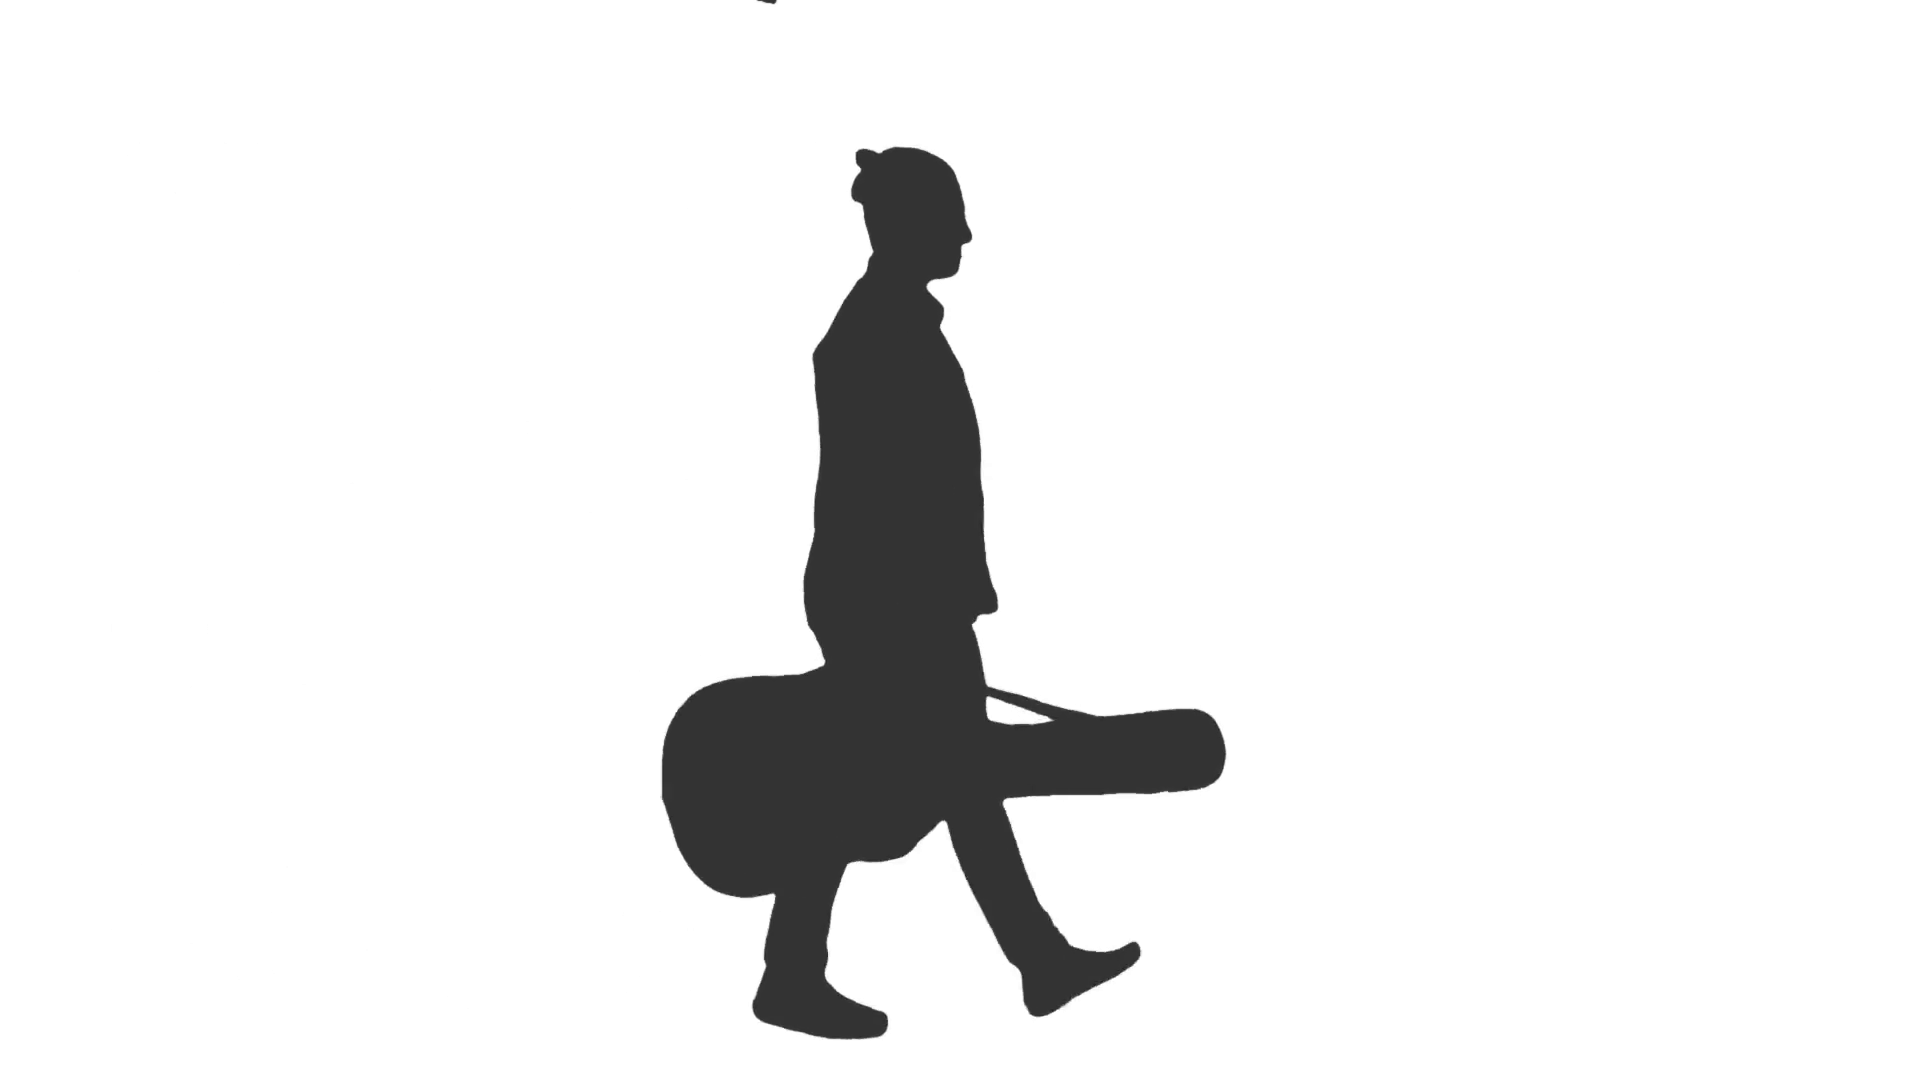 1920x1080 Silhouette Of The Guy With A Guitar Waiting For Something